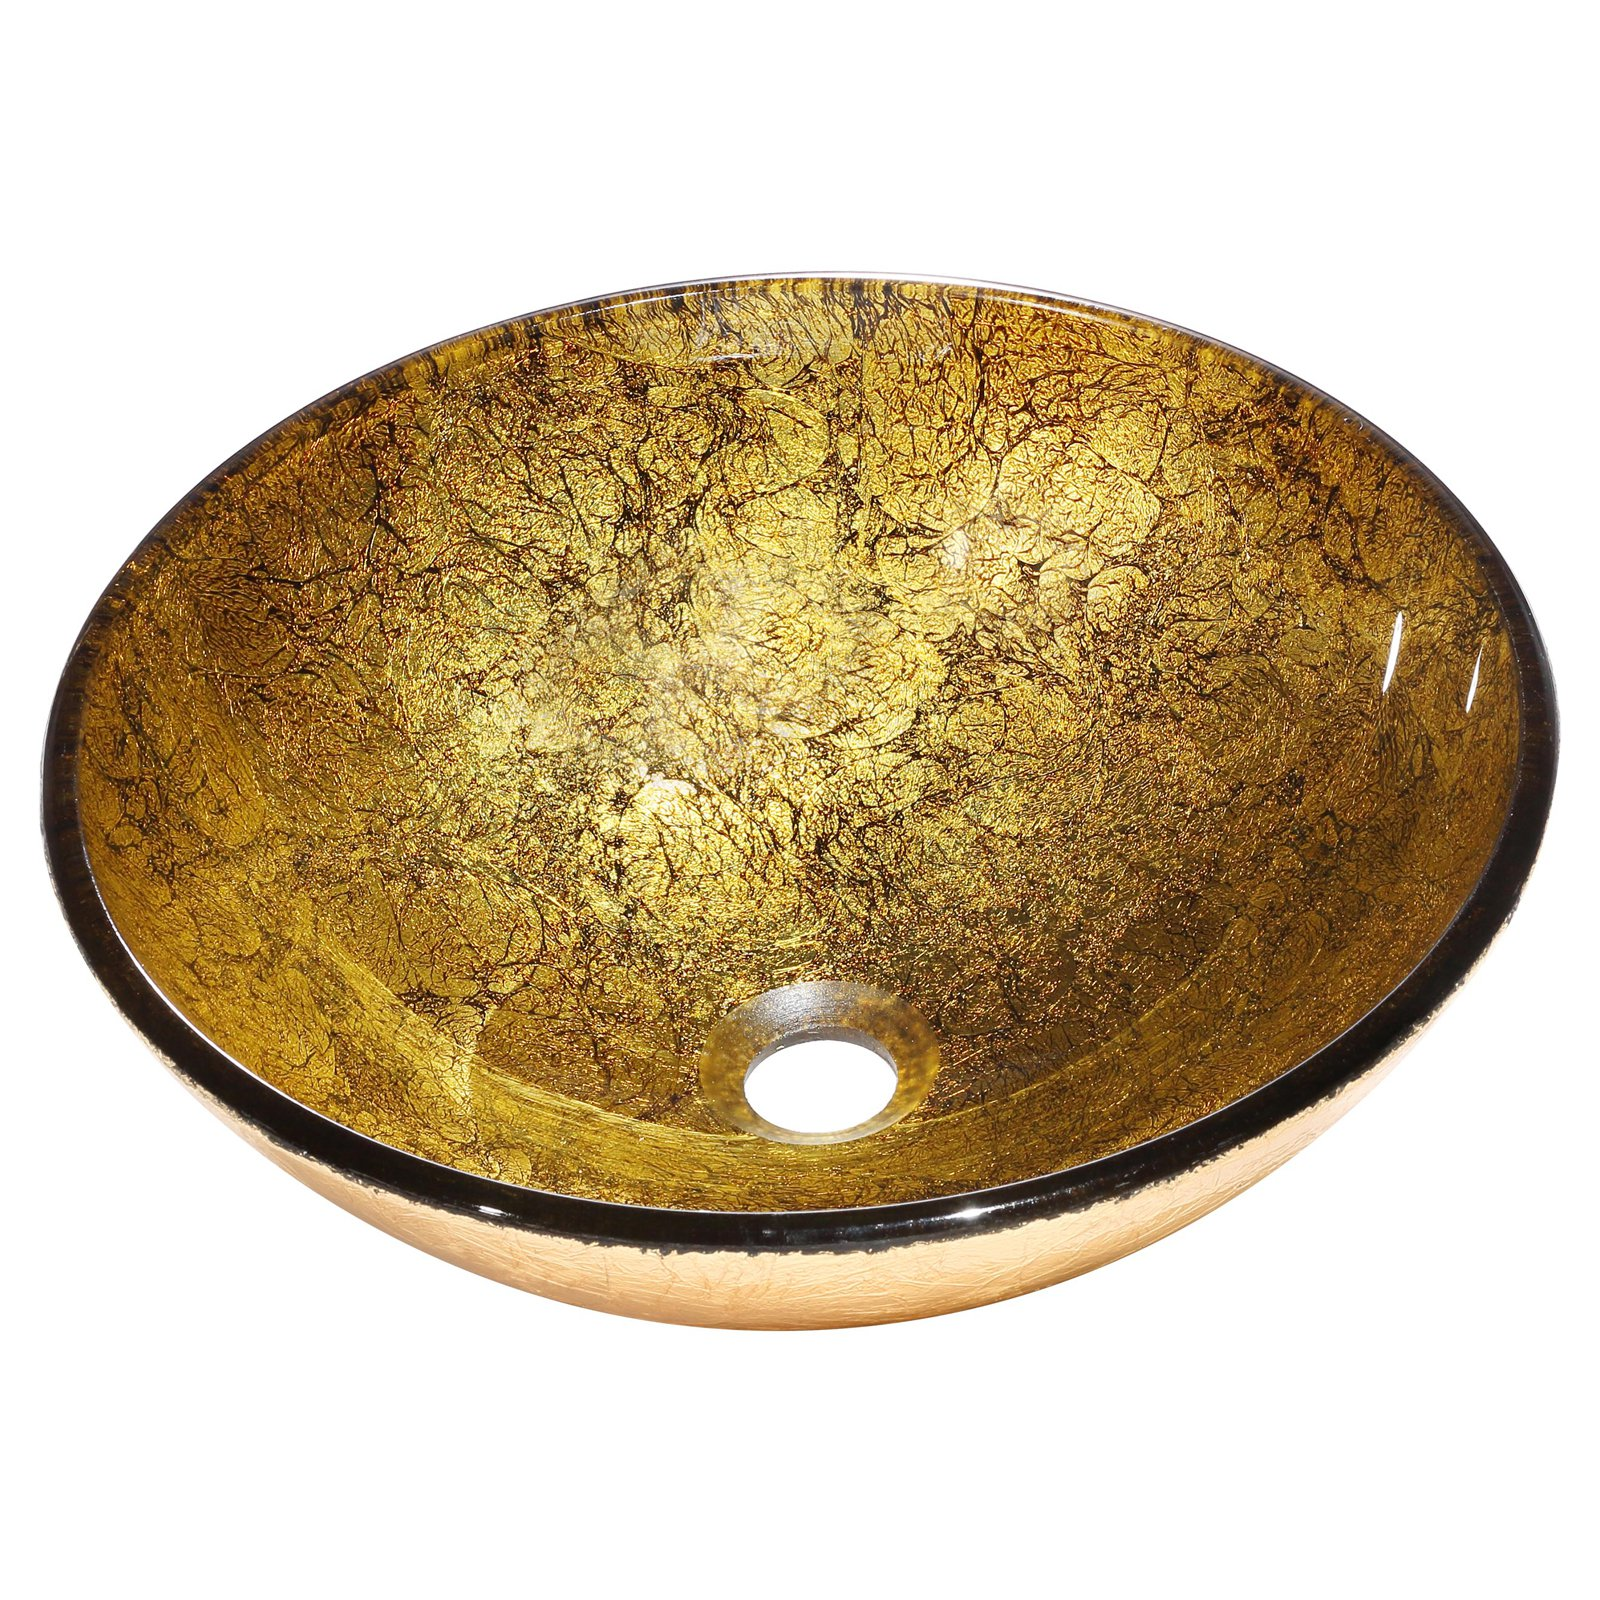 Bourgeois Golden Brown and Bronze Vessel Sink